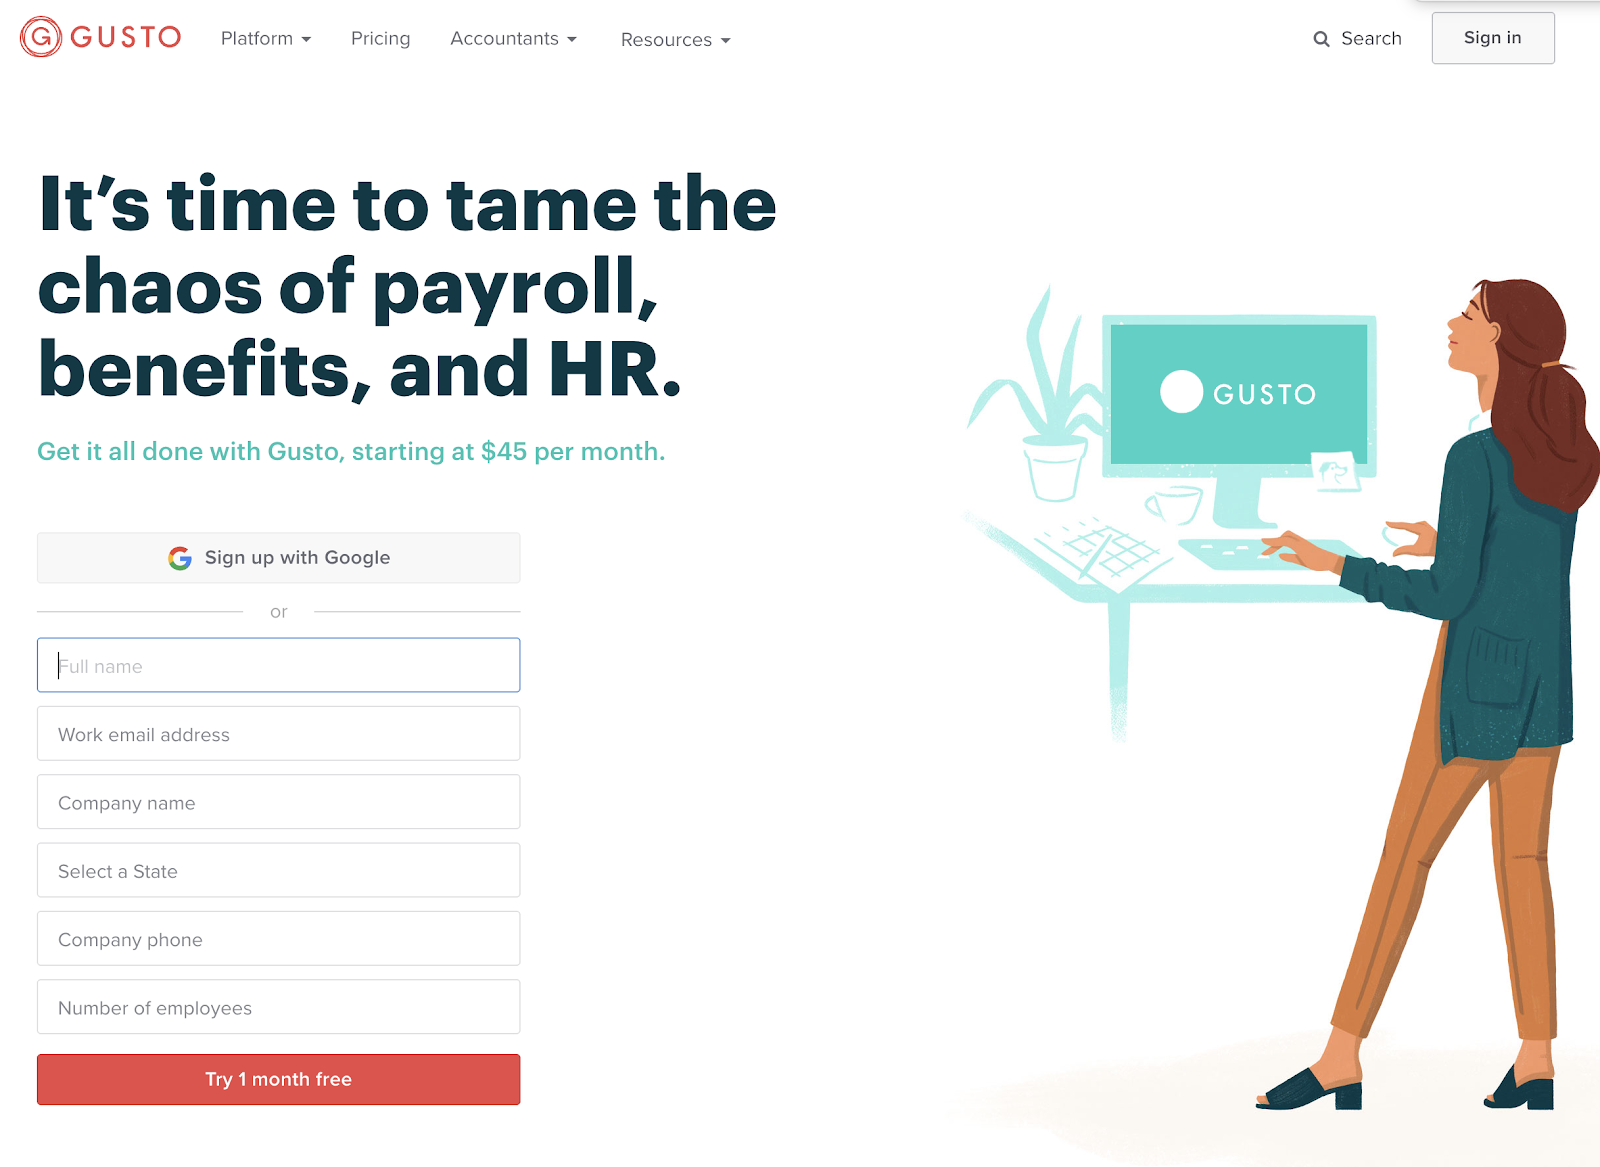 this is a screenshot image of hr platform gusto's marketing homepage. on the left is an illustration of a woman at a desktop computer, on the right is a large header and signup form with single signon button